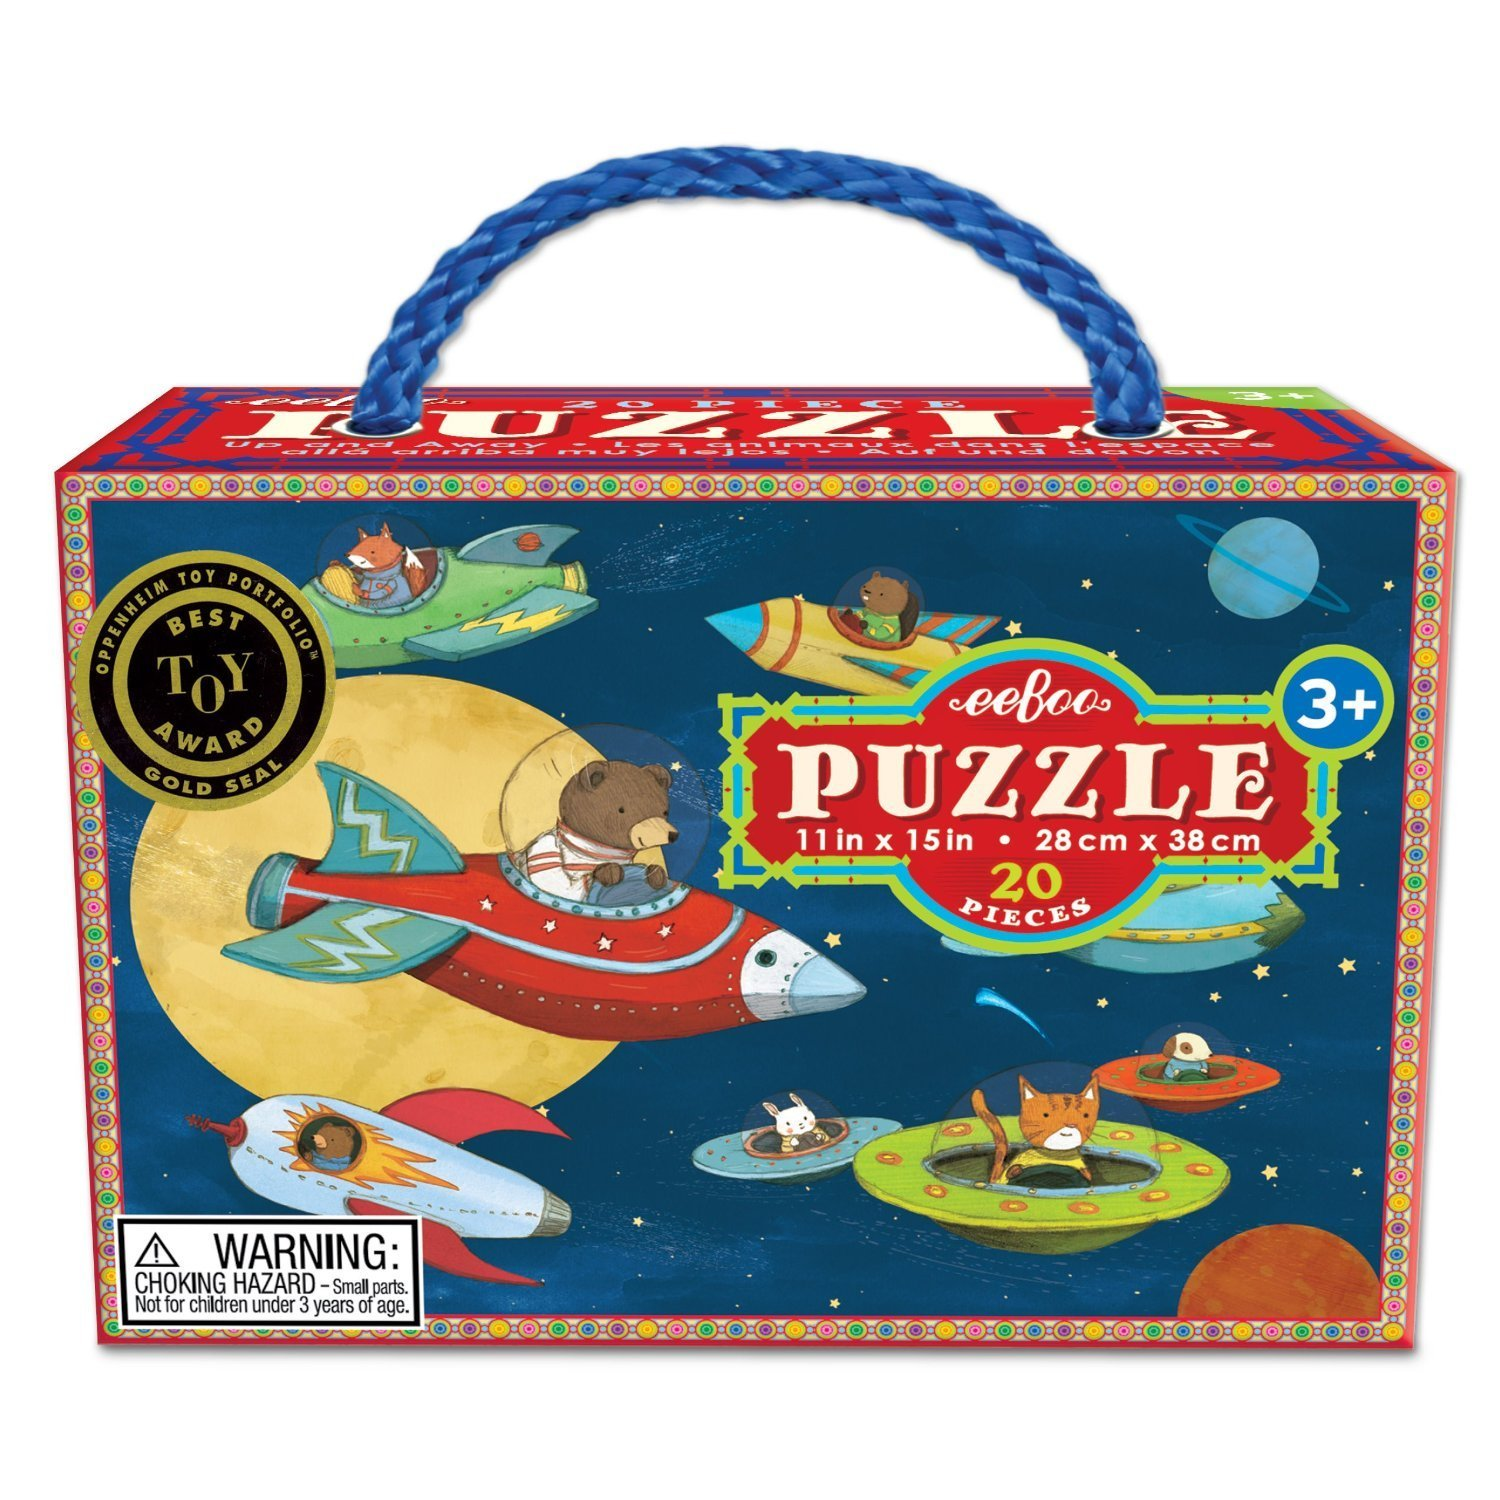 20 Jumbo Piece Puzzles, Illustrations by Melissa Sweet and Kevin Hawkes eeBoo